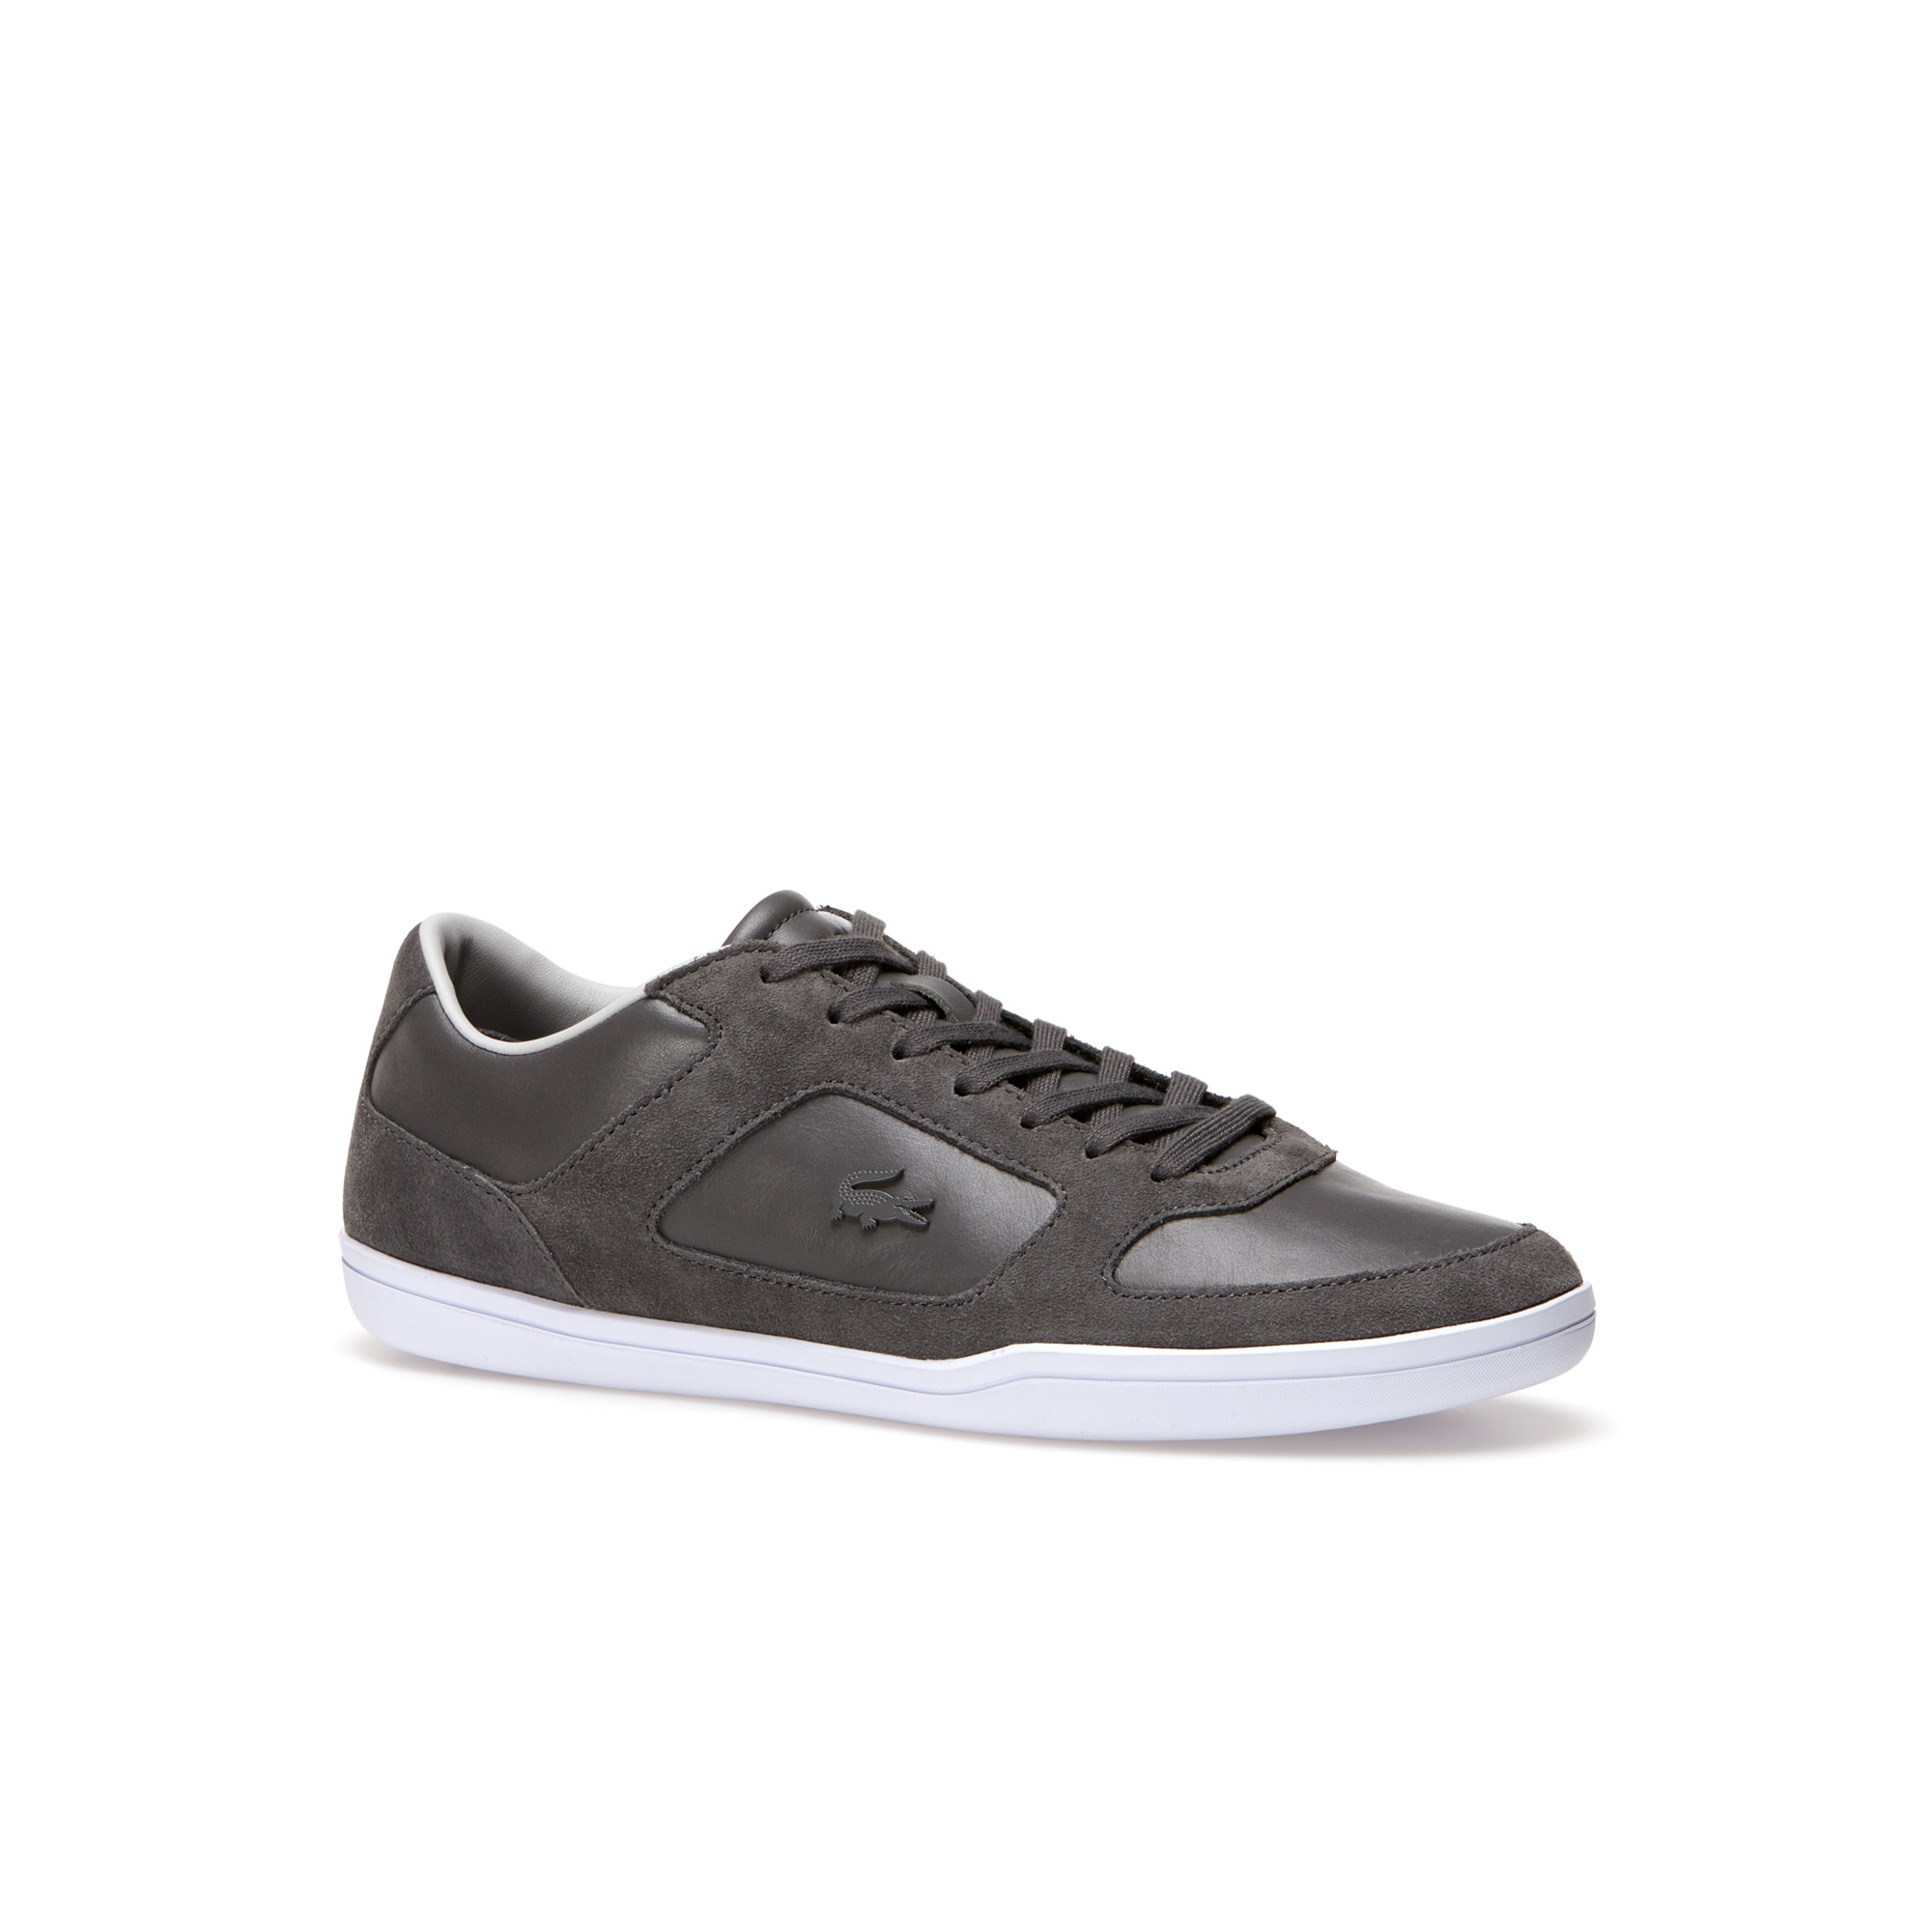 Men's Court-Minimal Leather And Suedette Sneakers